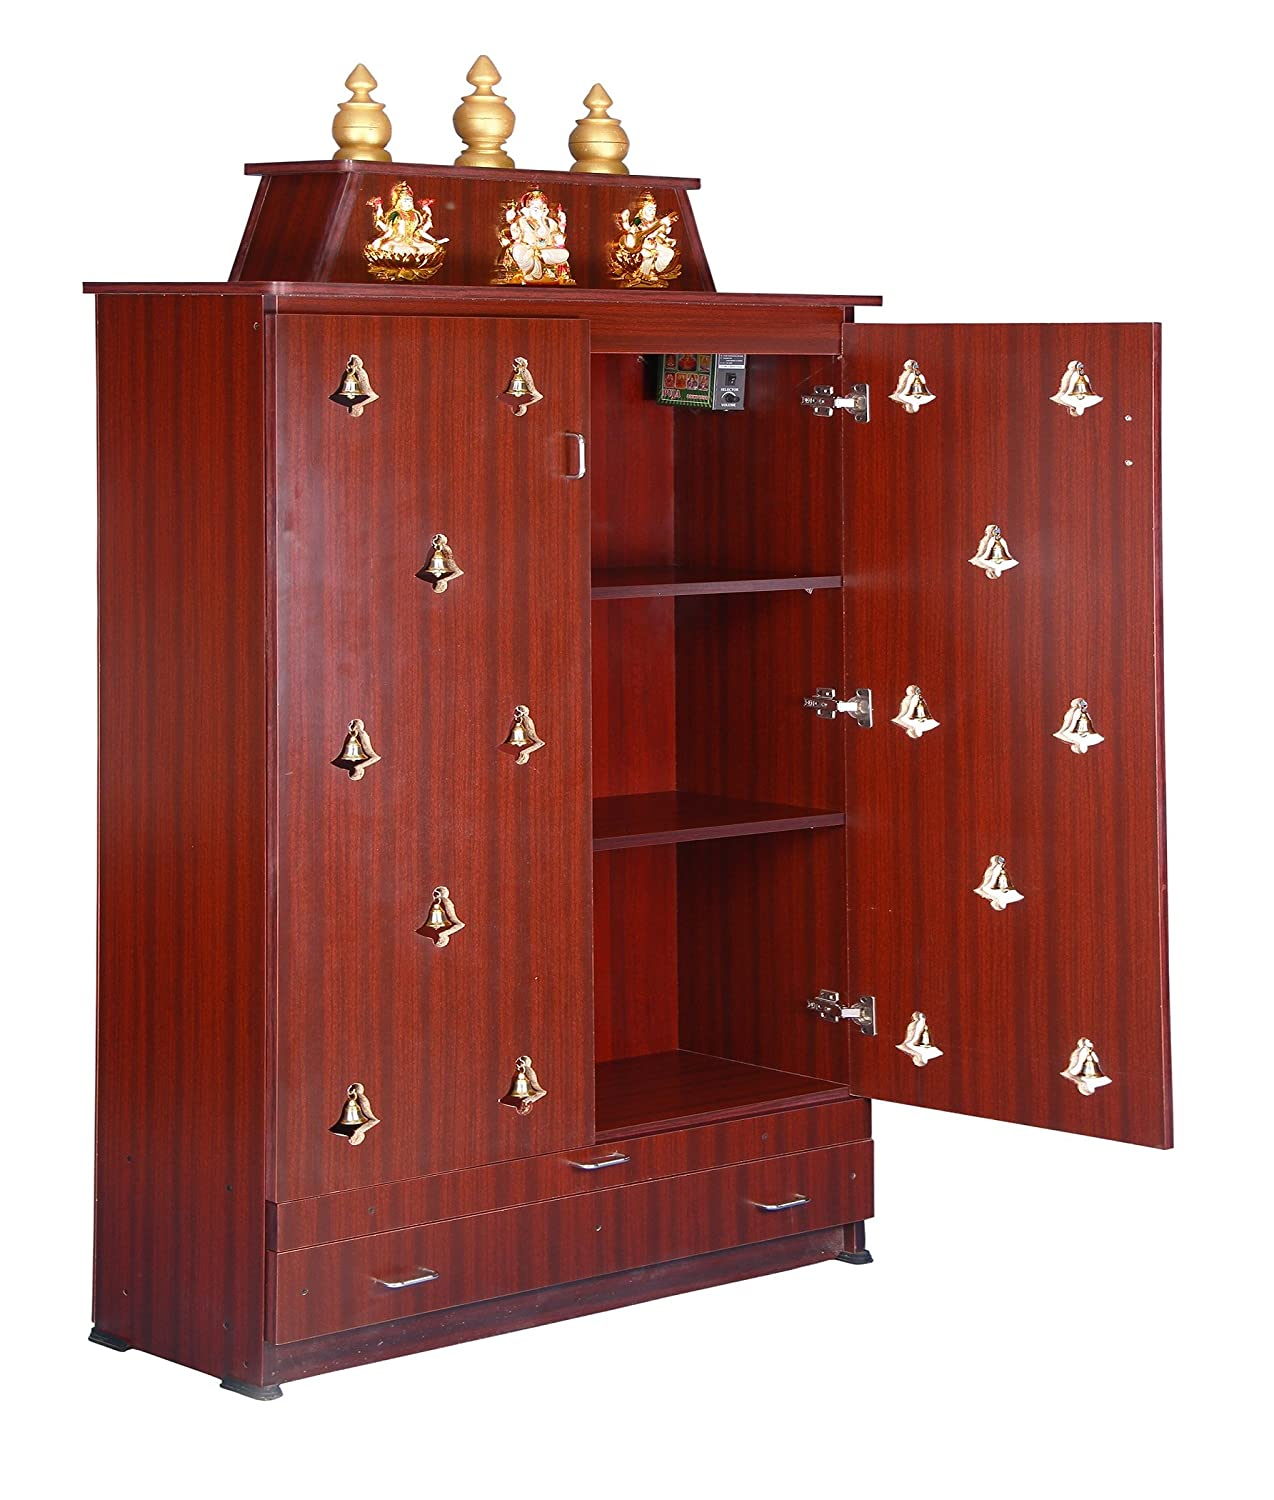 Pooja cupboard online shopping